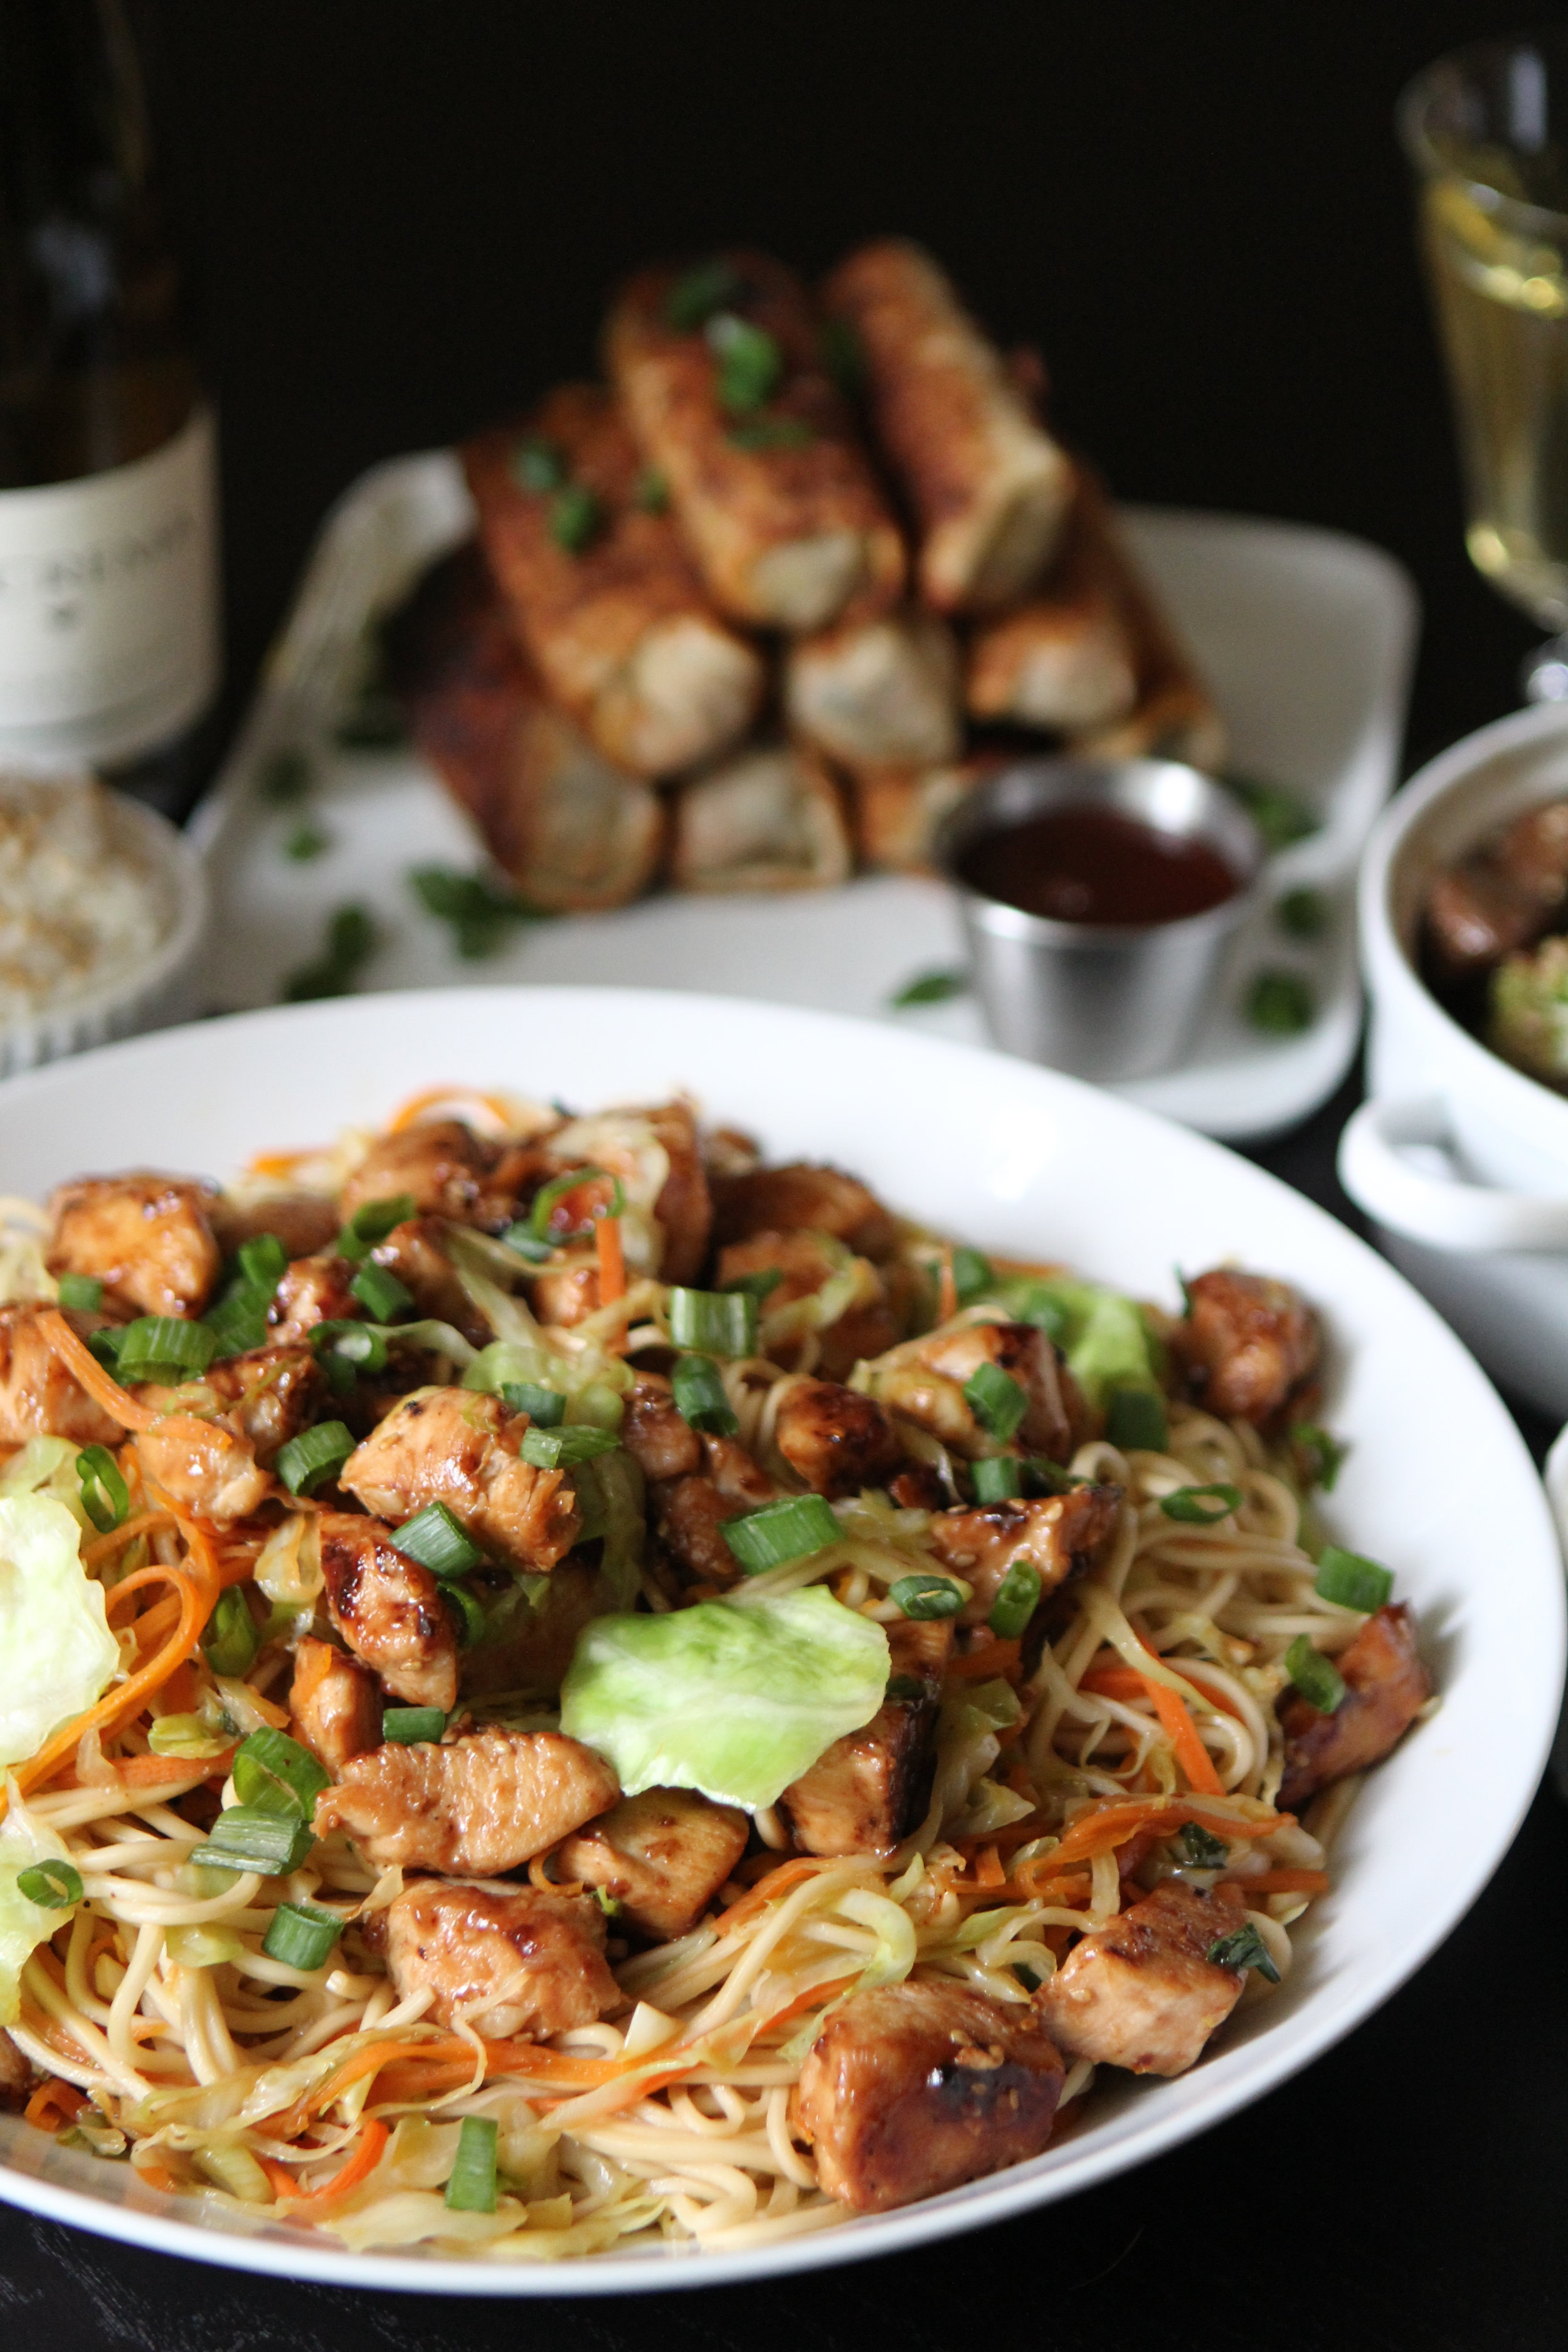 Chinese Food for Christmas | Freckled Italian